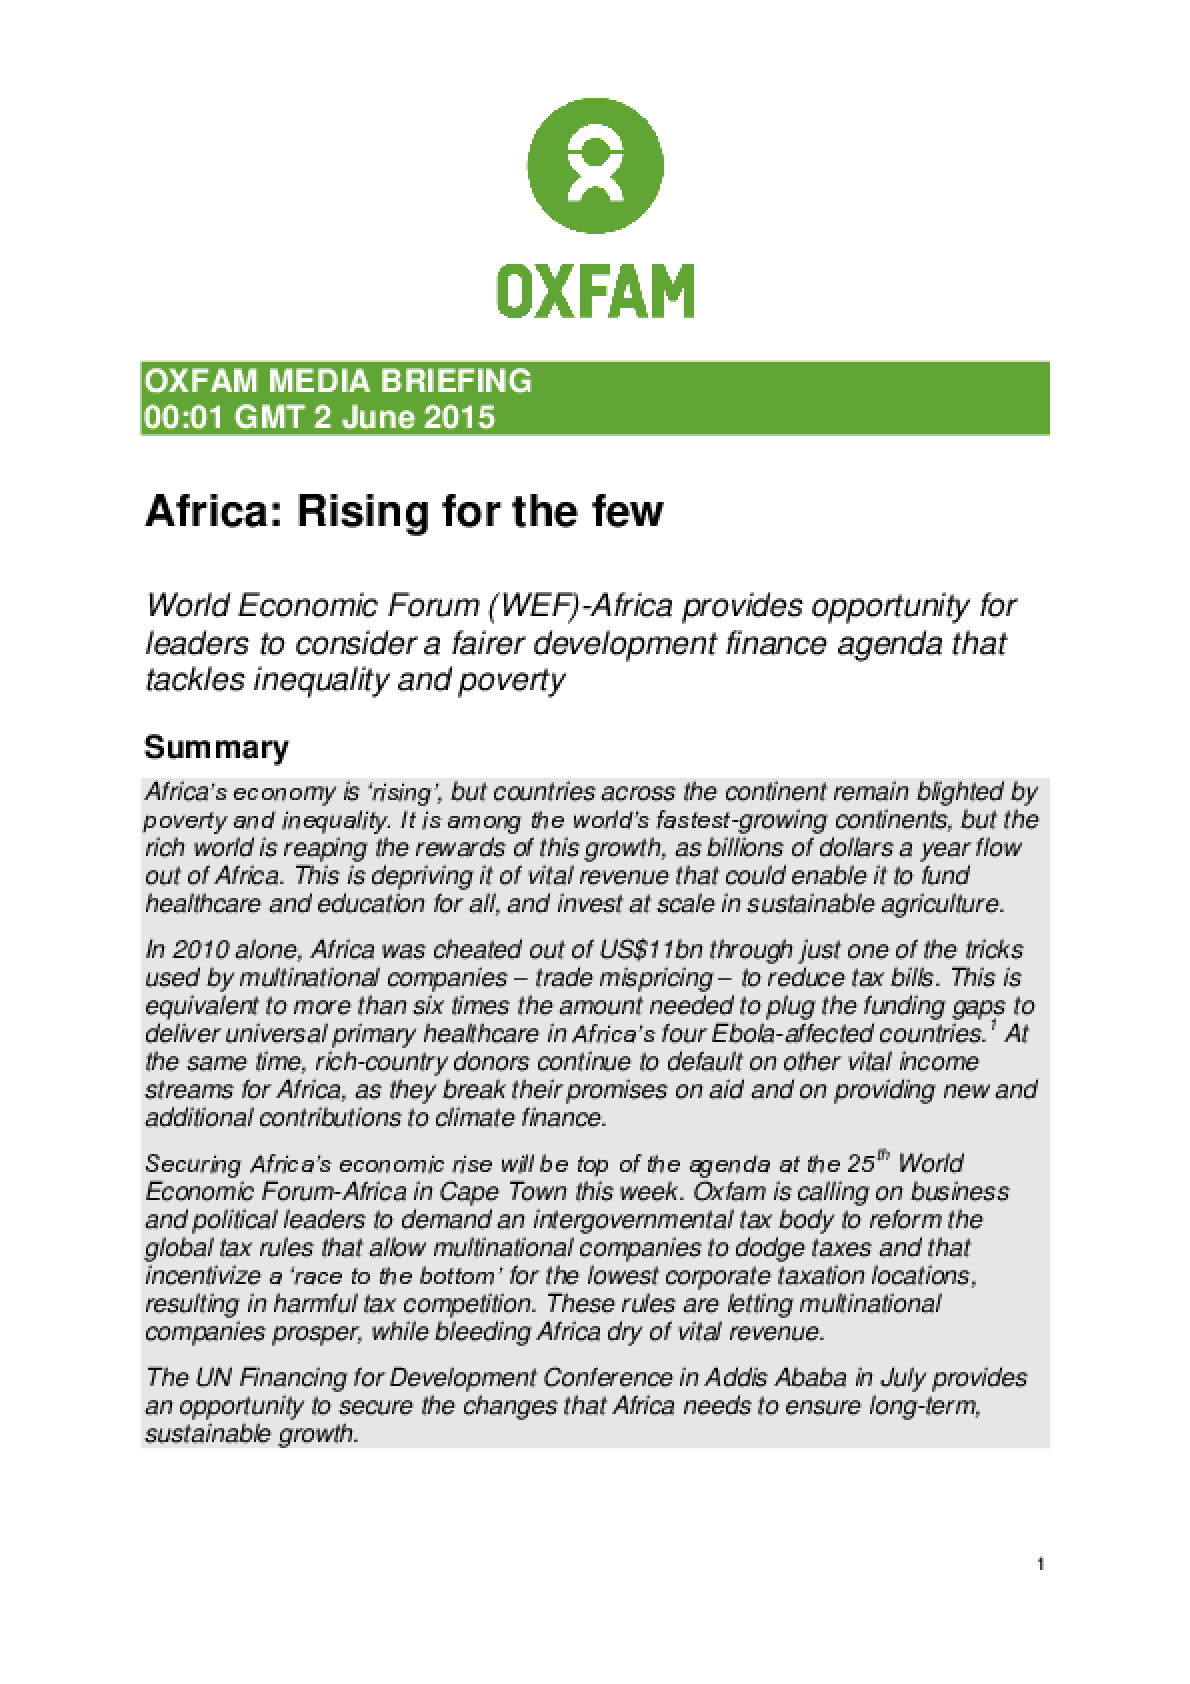 Africa: Rising for the few